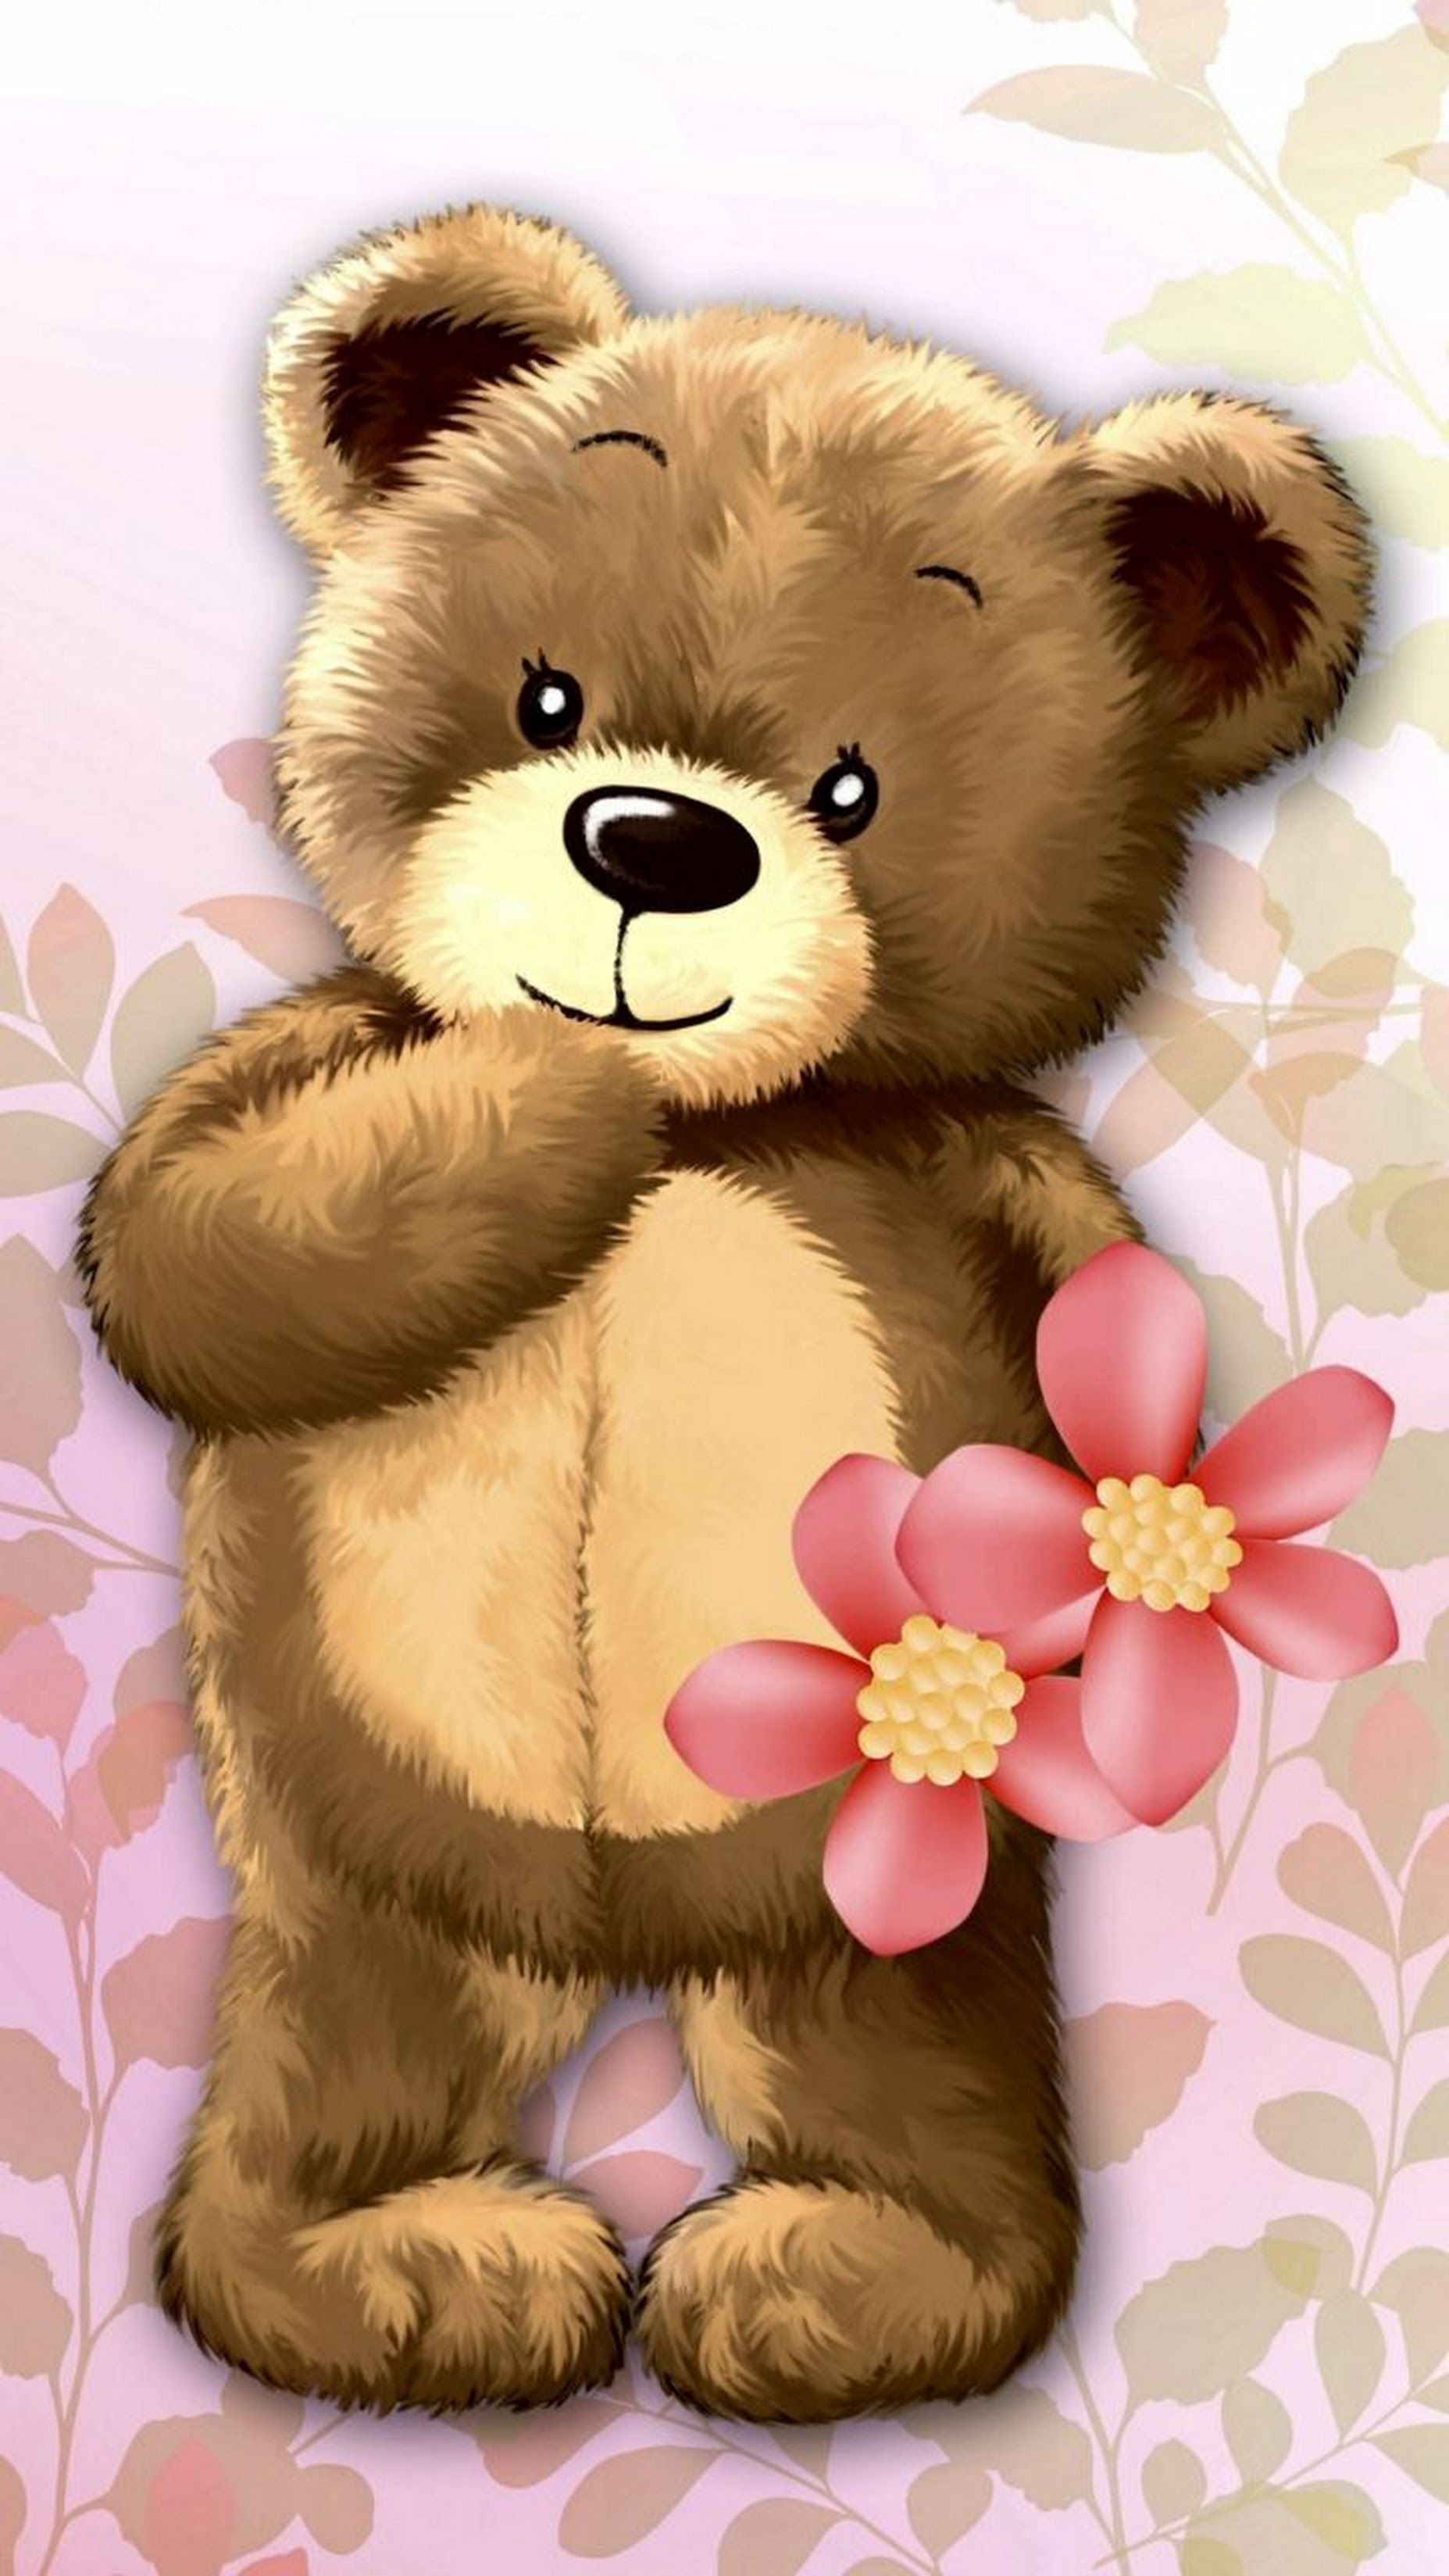 Foto Bear Wallpaper Easter Wallpaper Cuddling Oso Cute Teddy Bear Wallpapers For Iphone Is Free In 2020 Teddy Bear Wallpaper Teddy Bear Drawing Teddy Bear Cartoon